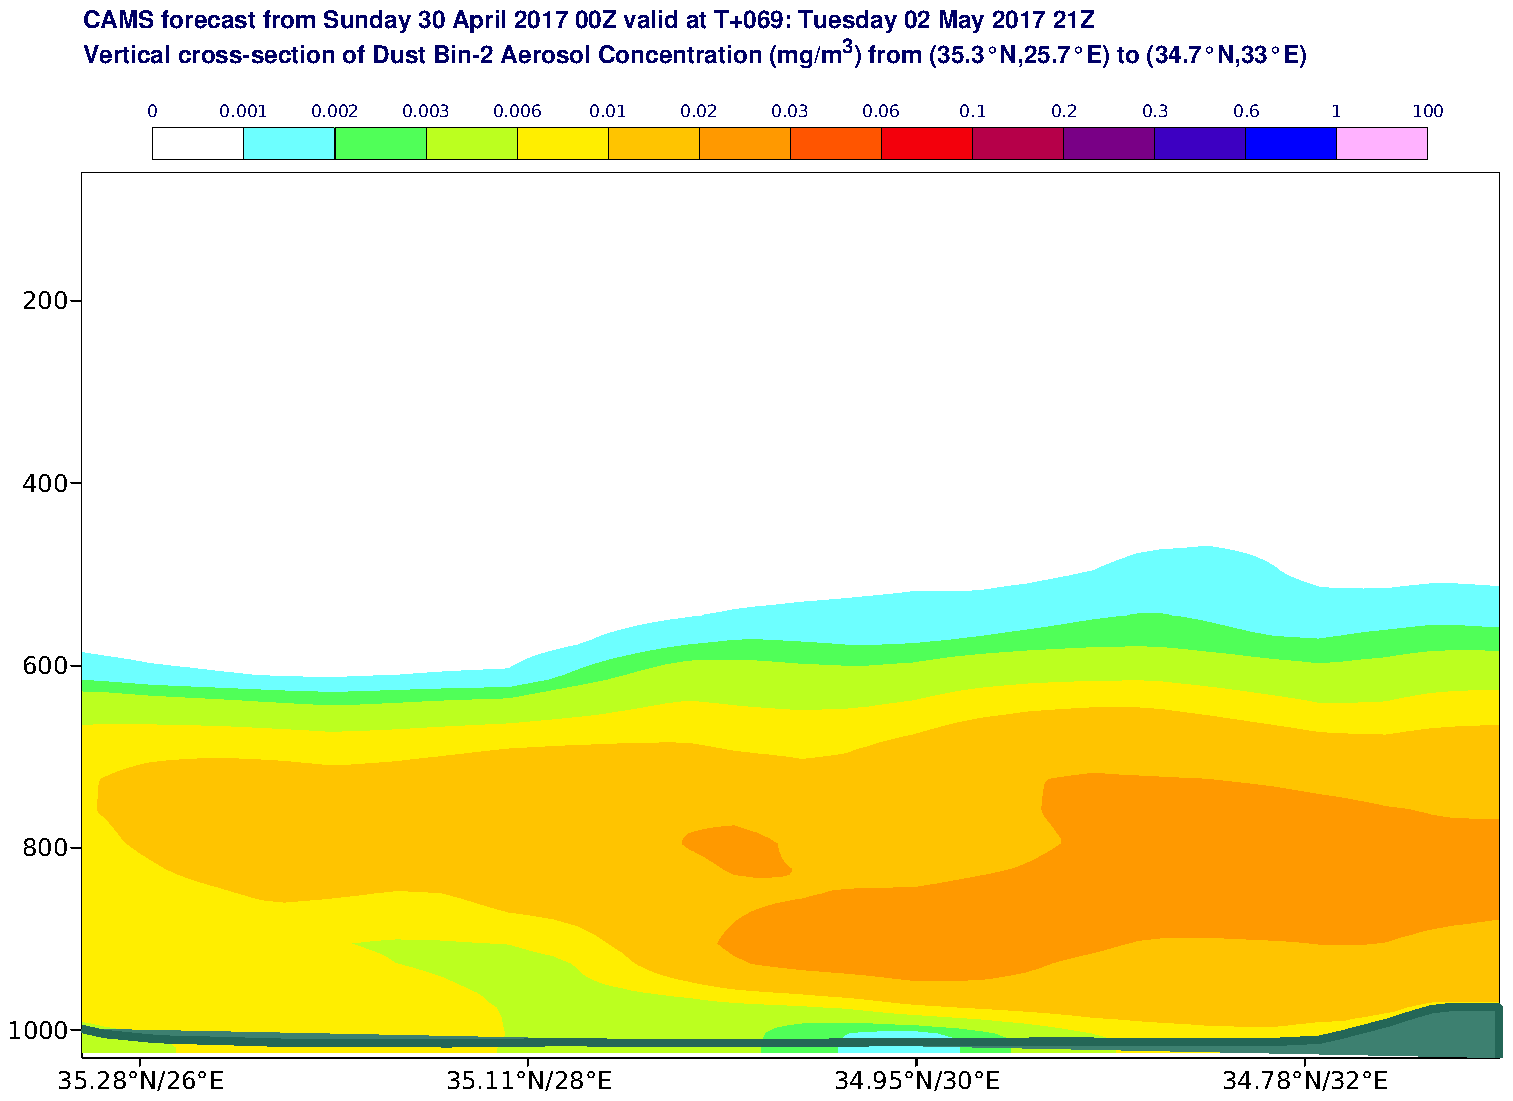 Vertical cross-section of Dust Bin-2 Aerosol Concentration (mg/m3) valid at T69 - 2017-05-02 21:00